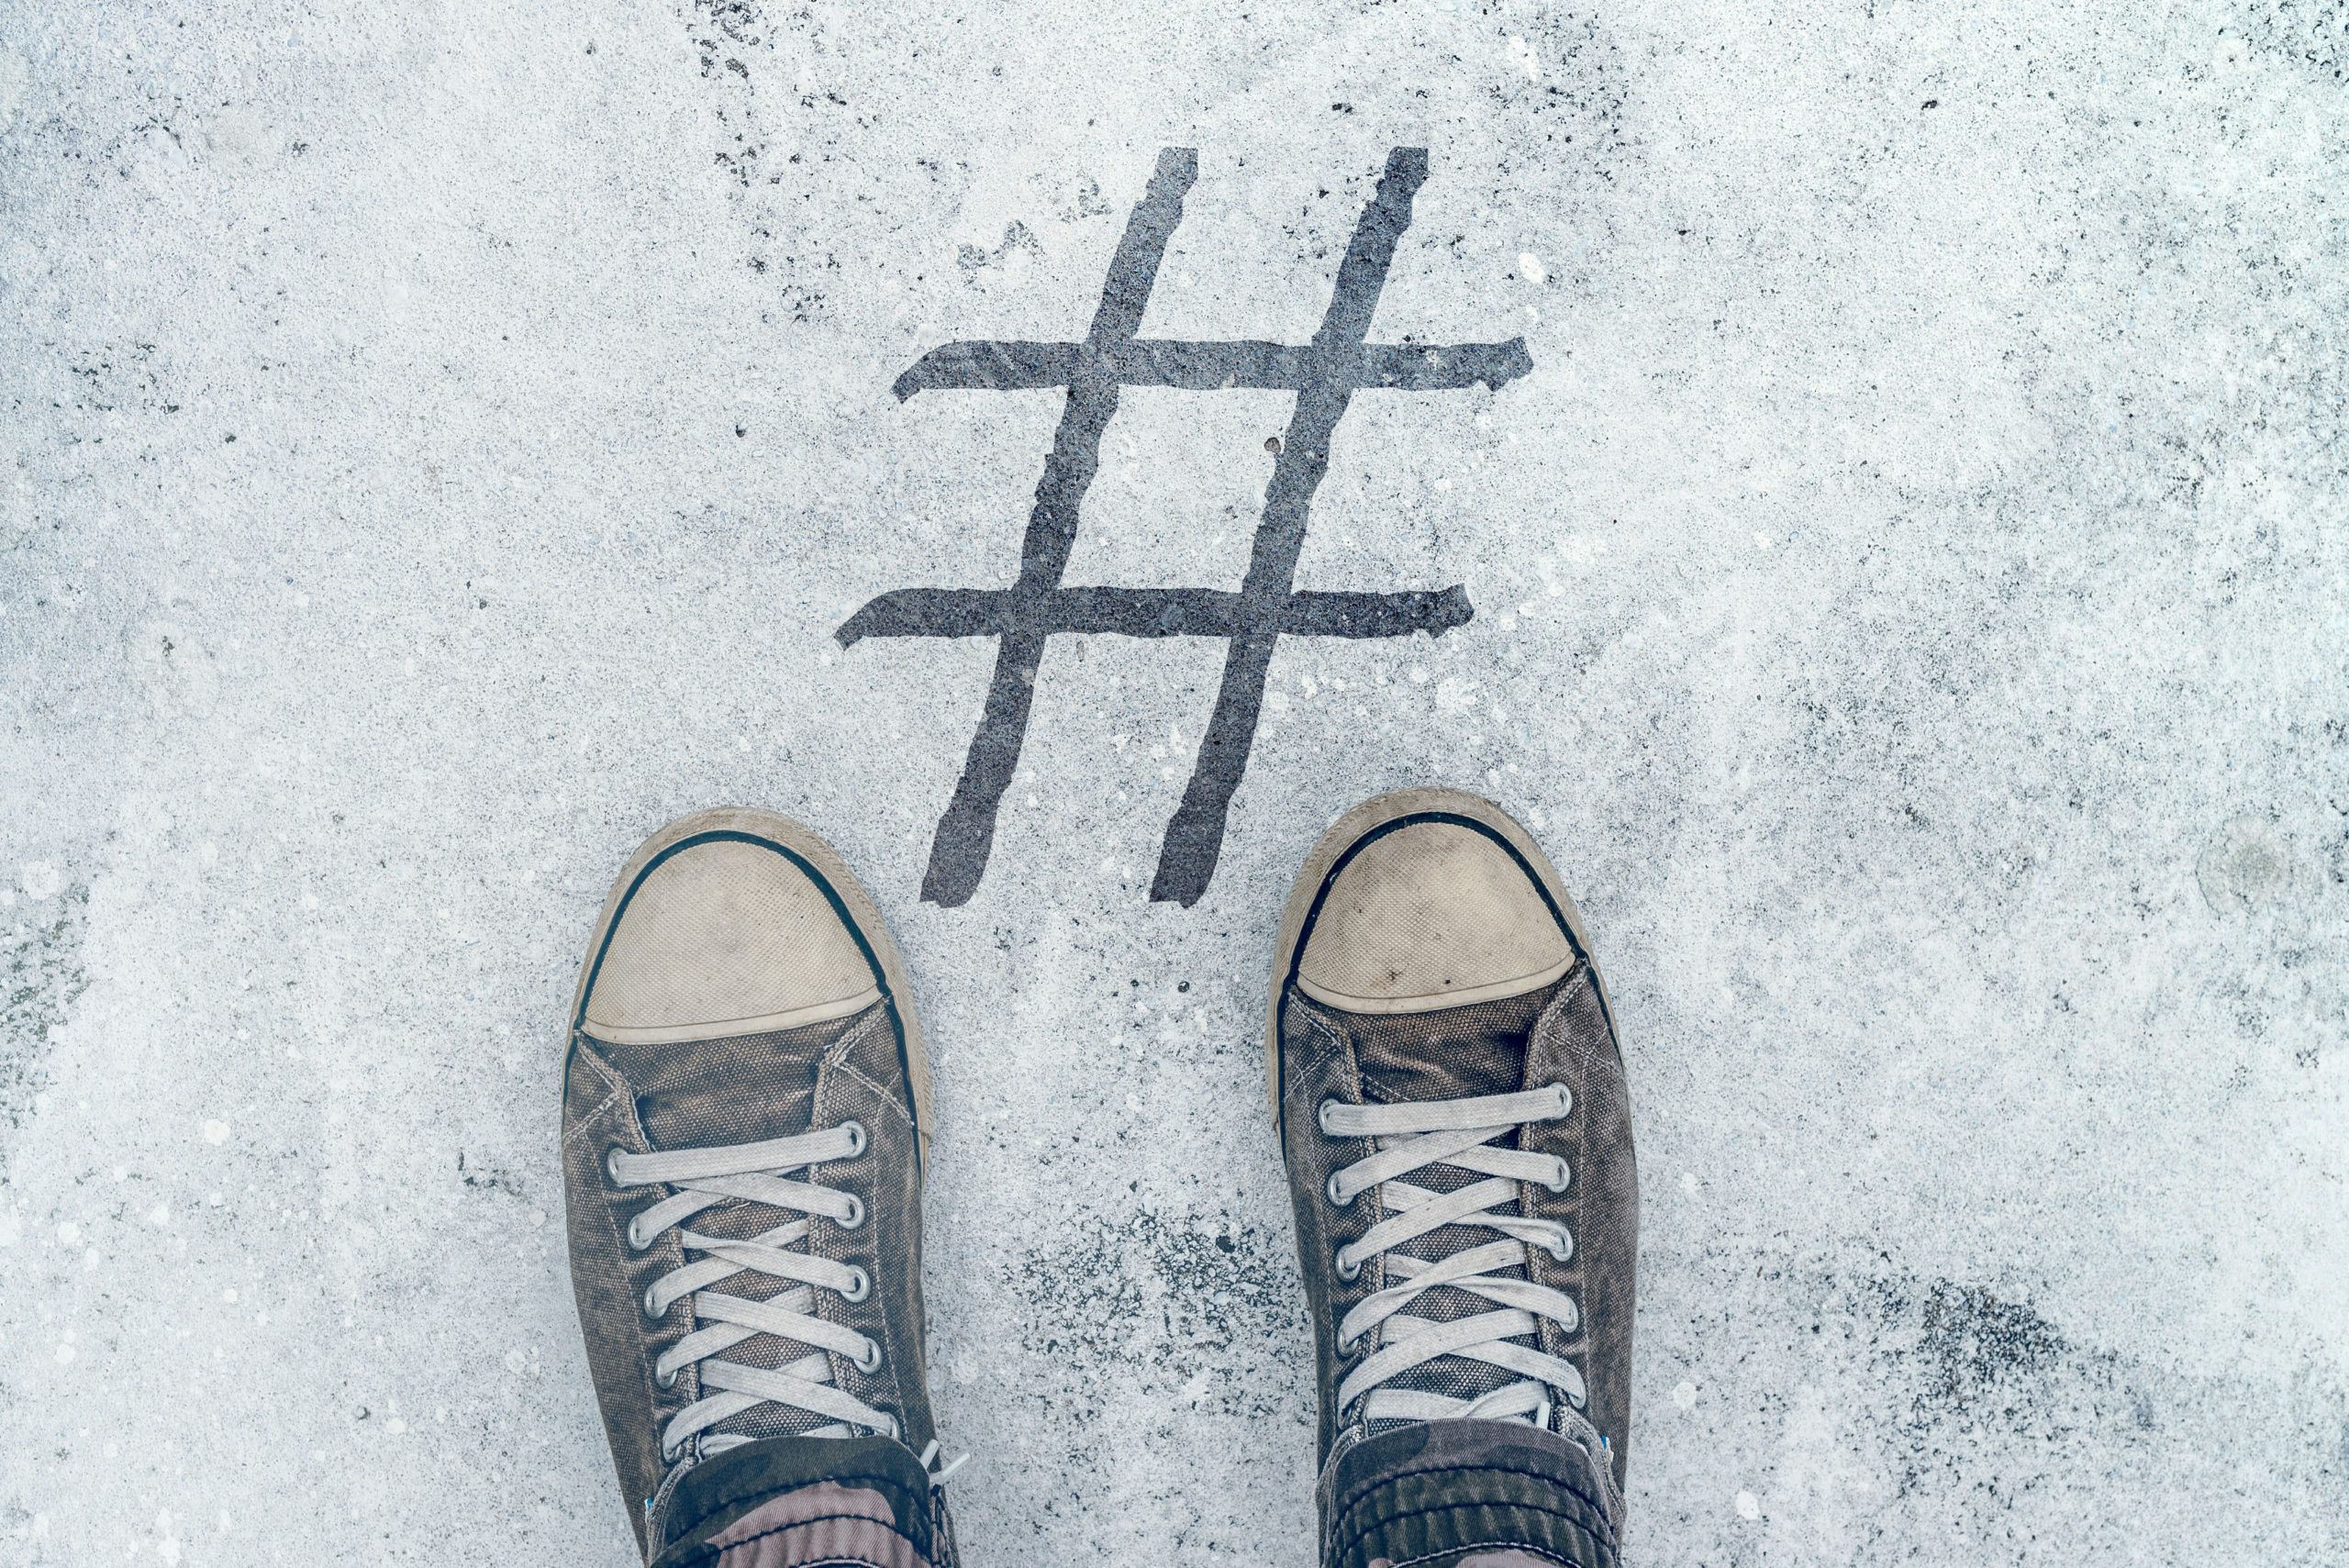 Best Hashtags to Gain Followers (Tips)